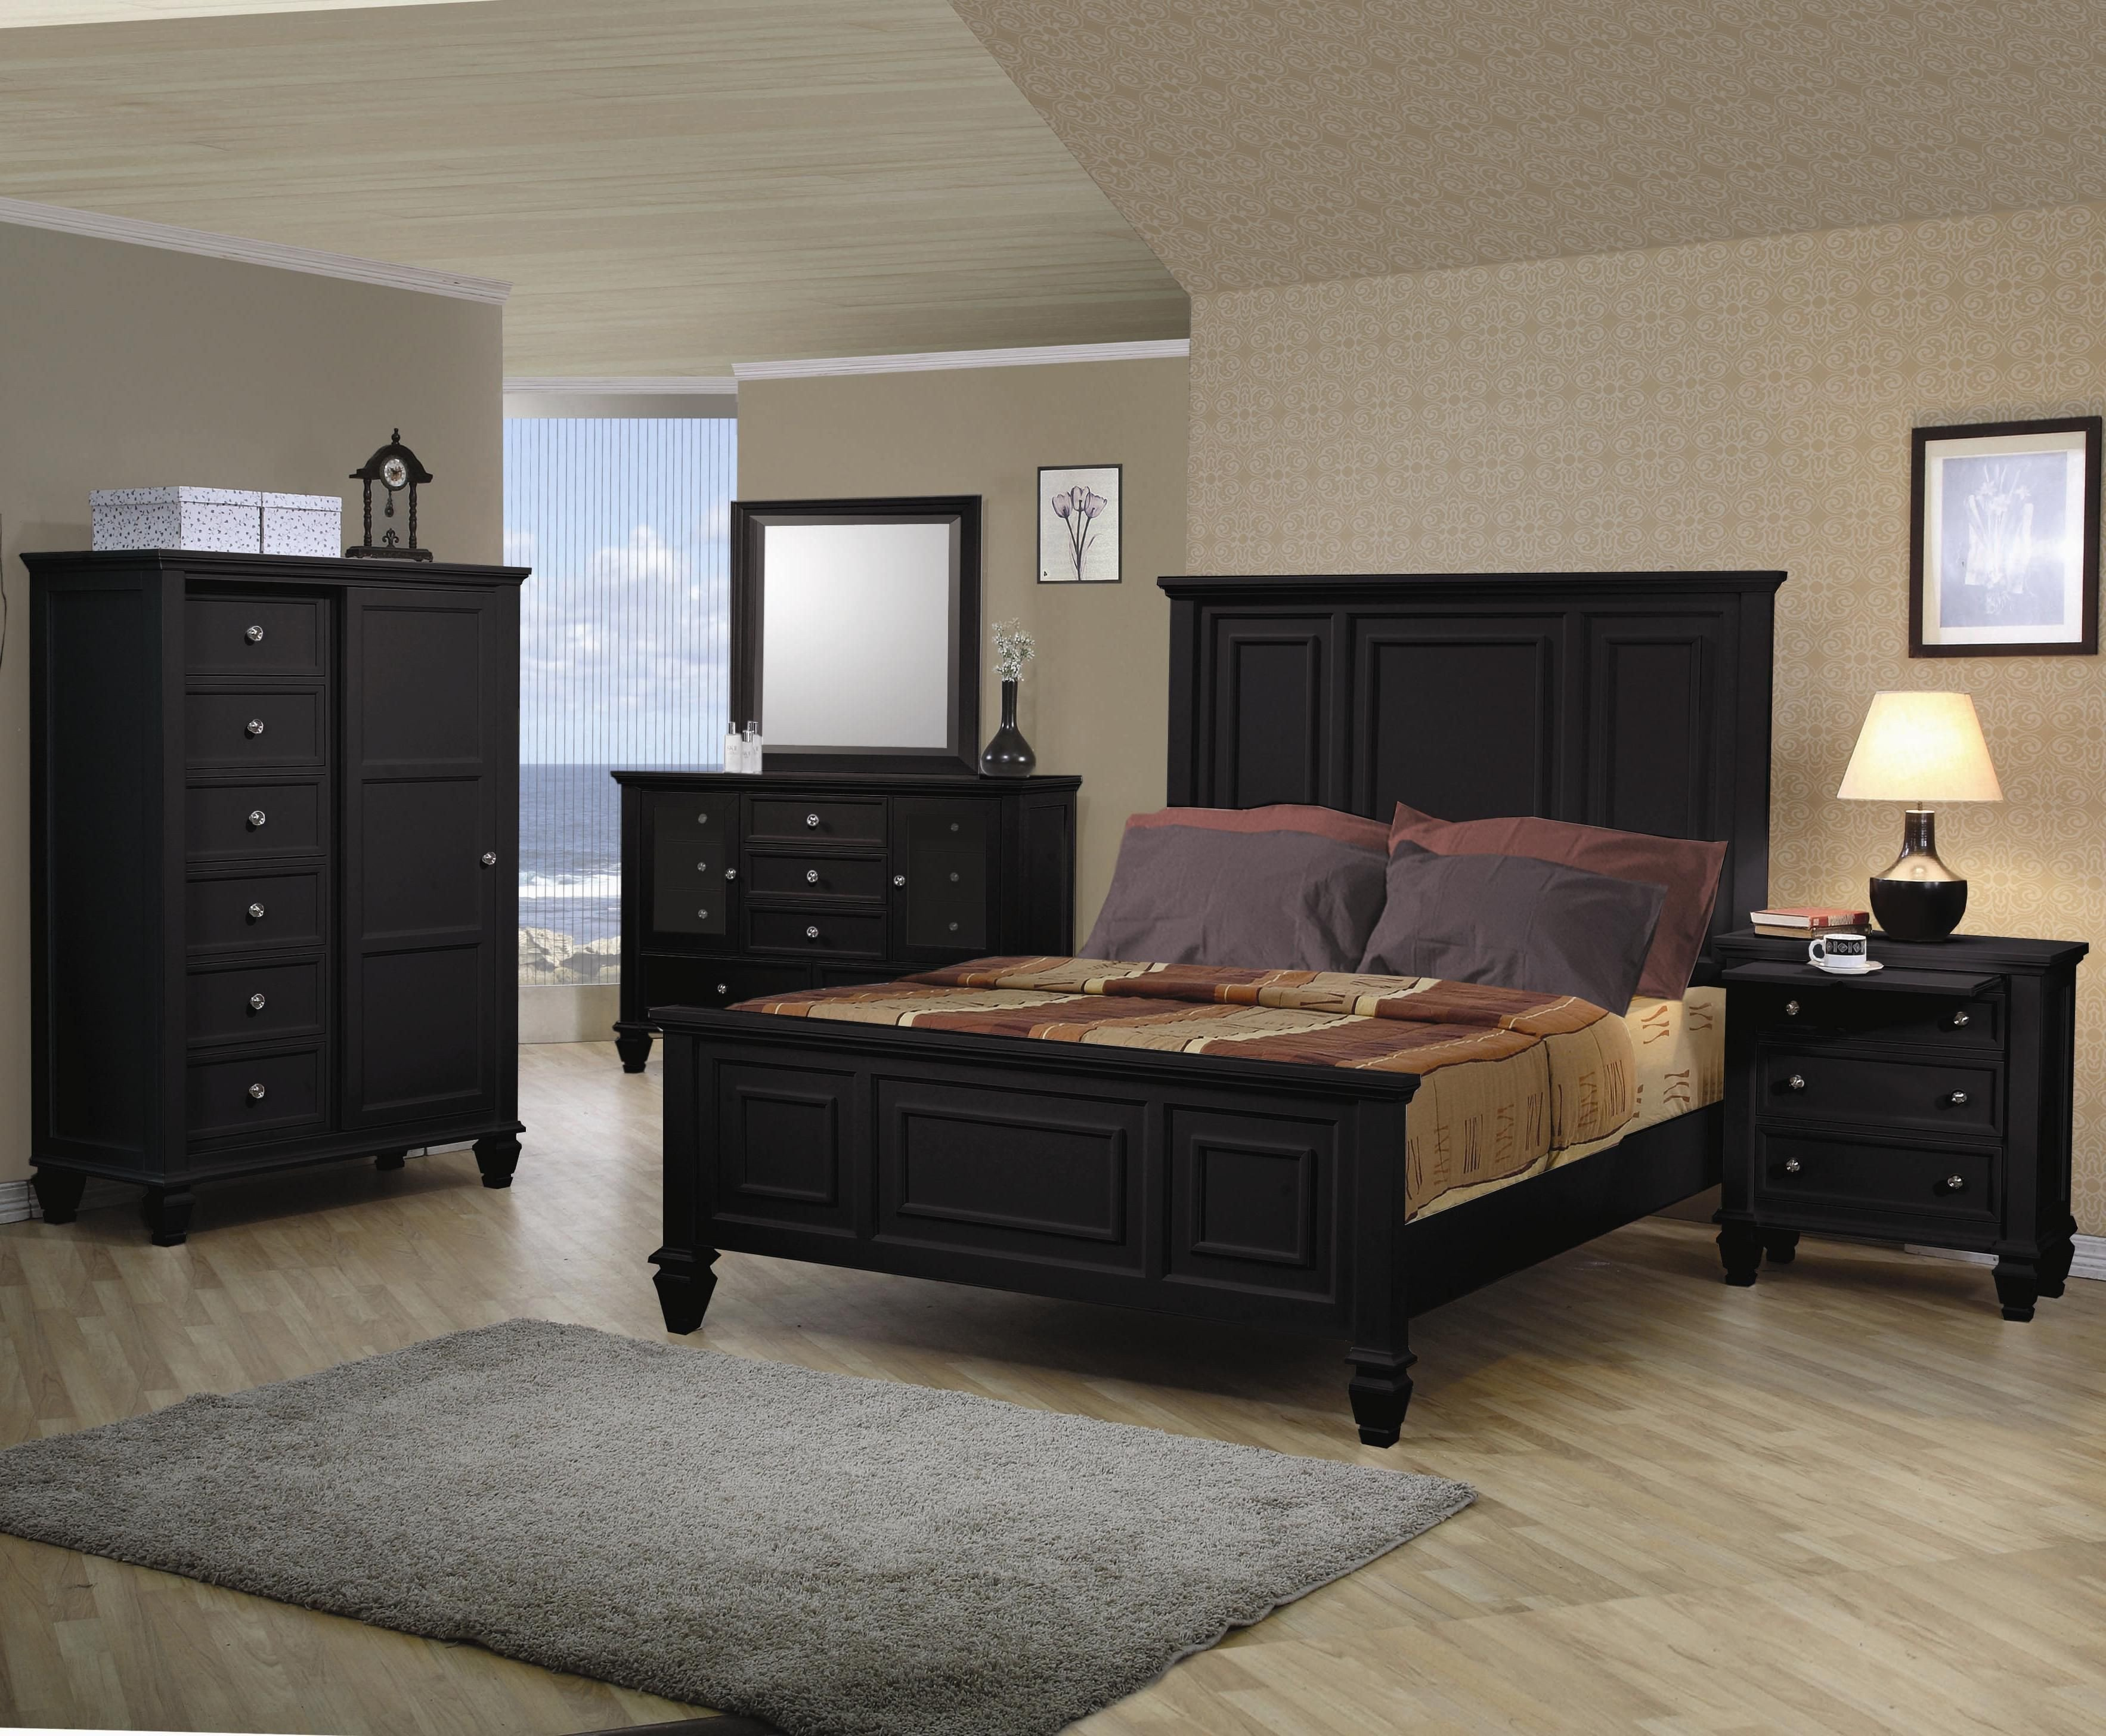 Black Bedroom Set Queen Lovely Pin On for the Bedroom